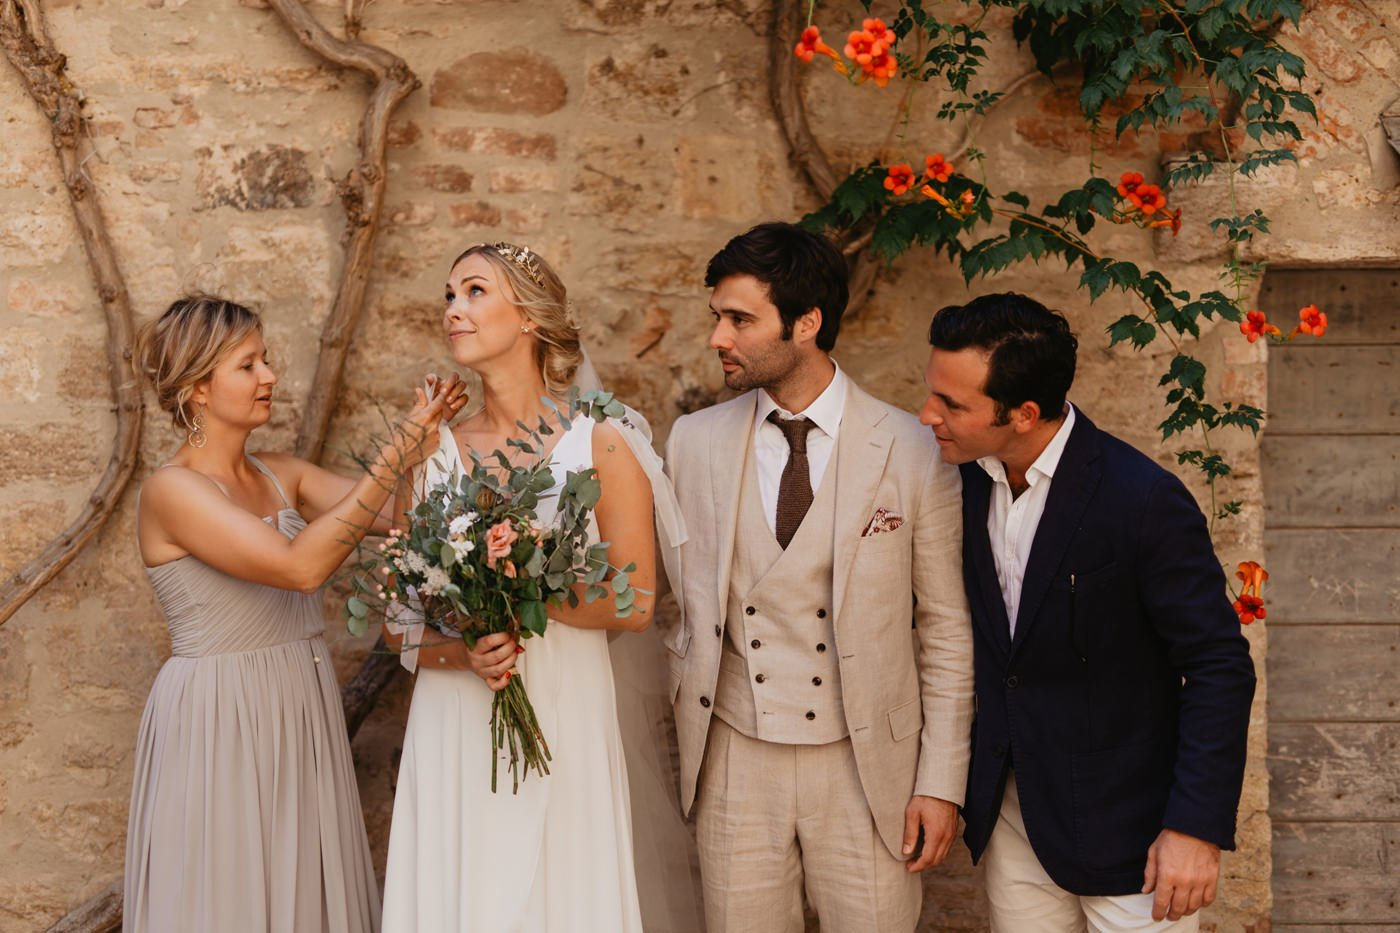 italian medieval town elopement wedding in Tuscany